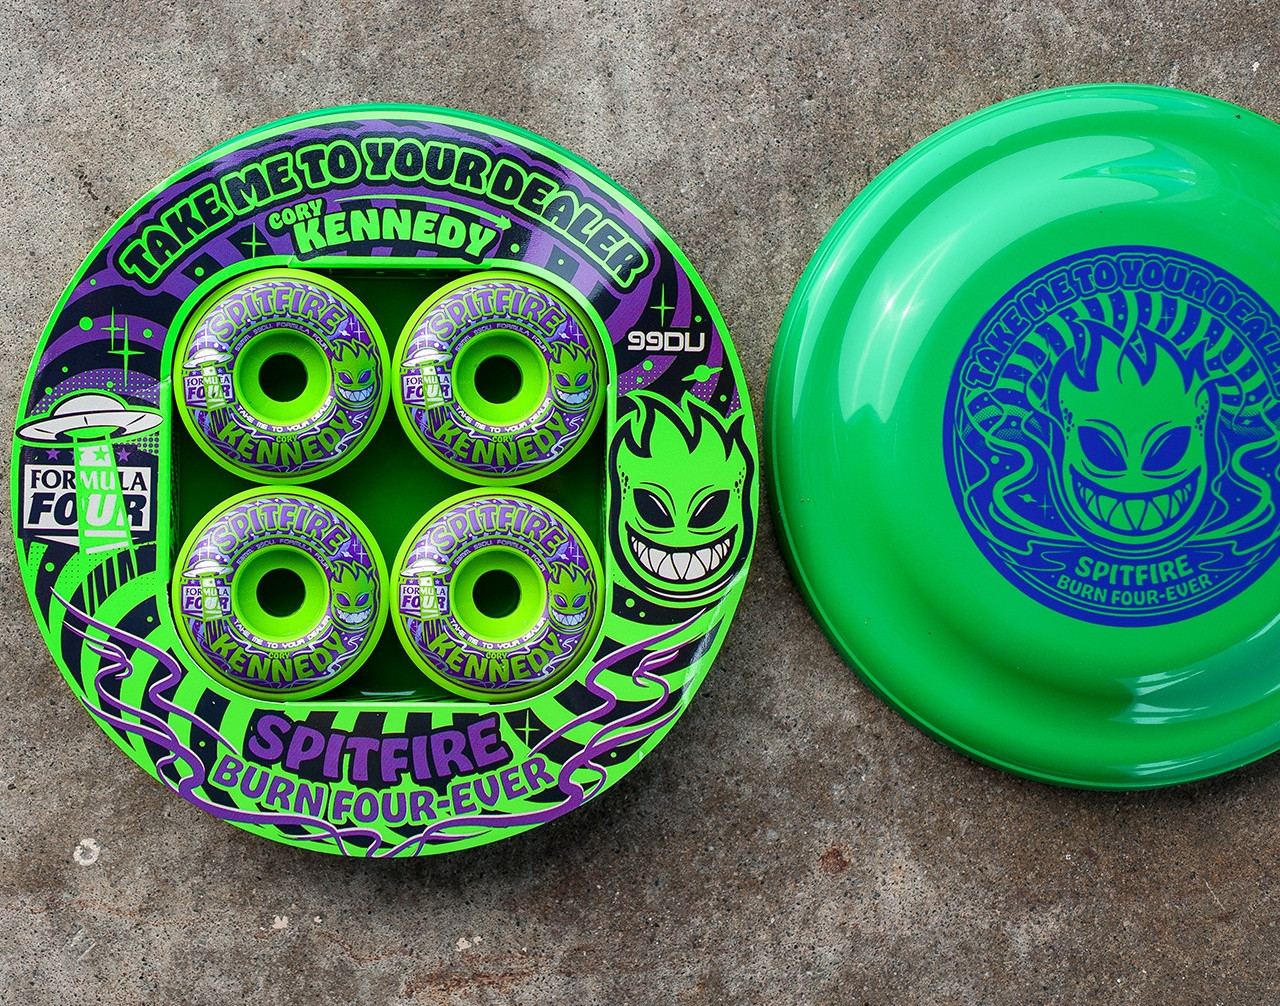 spitfire-wheels-formula-four-99-pro-kennedy-take-me-to-your-dealer-frisbee.jpg